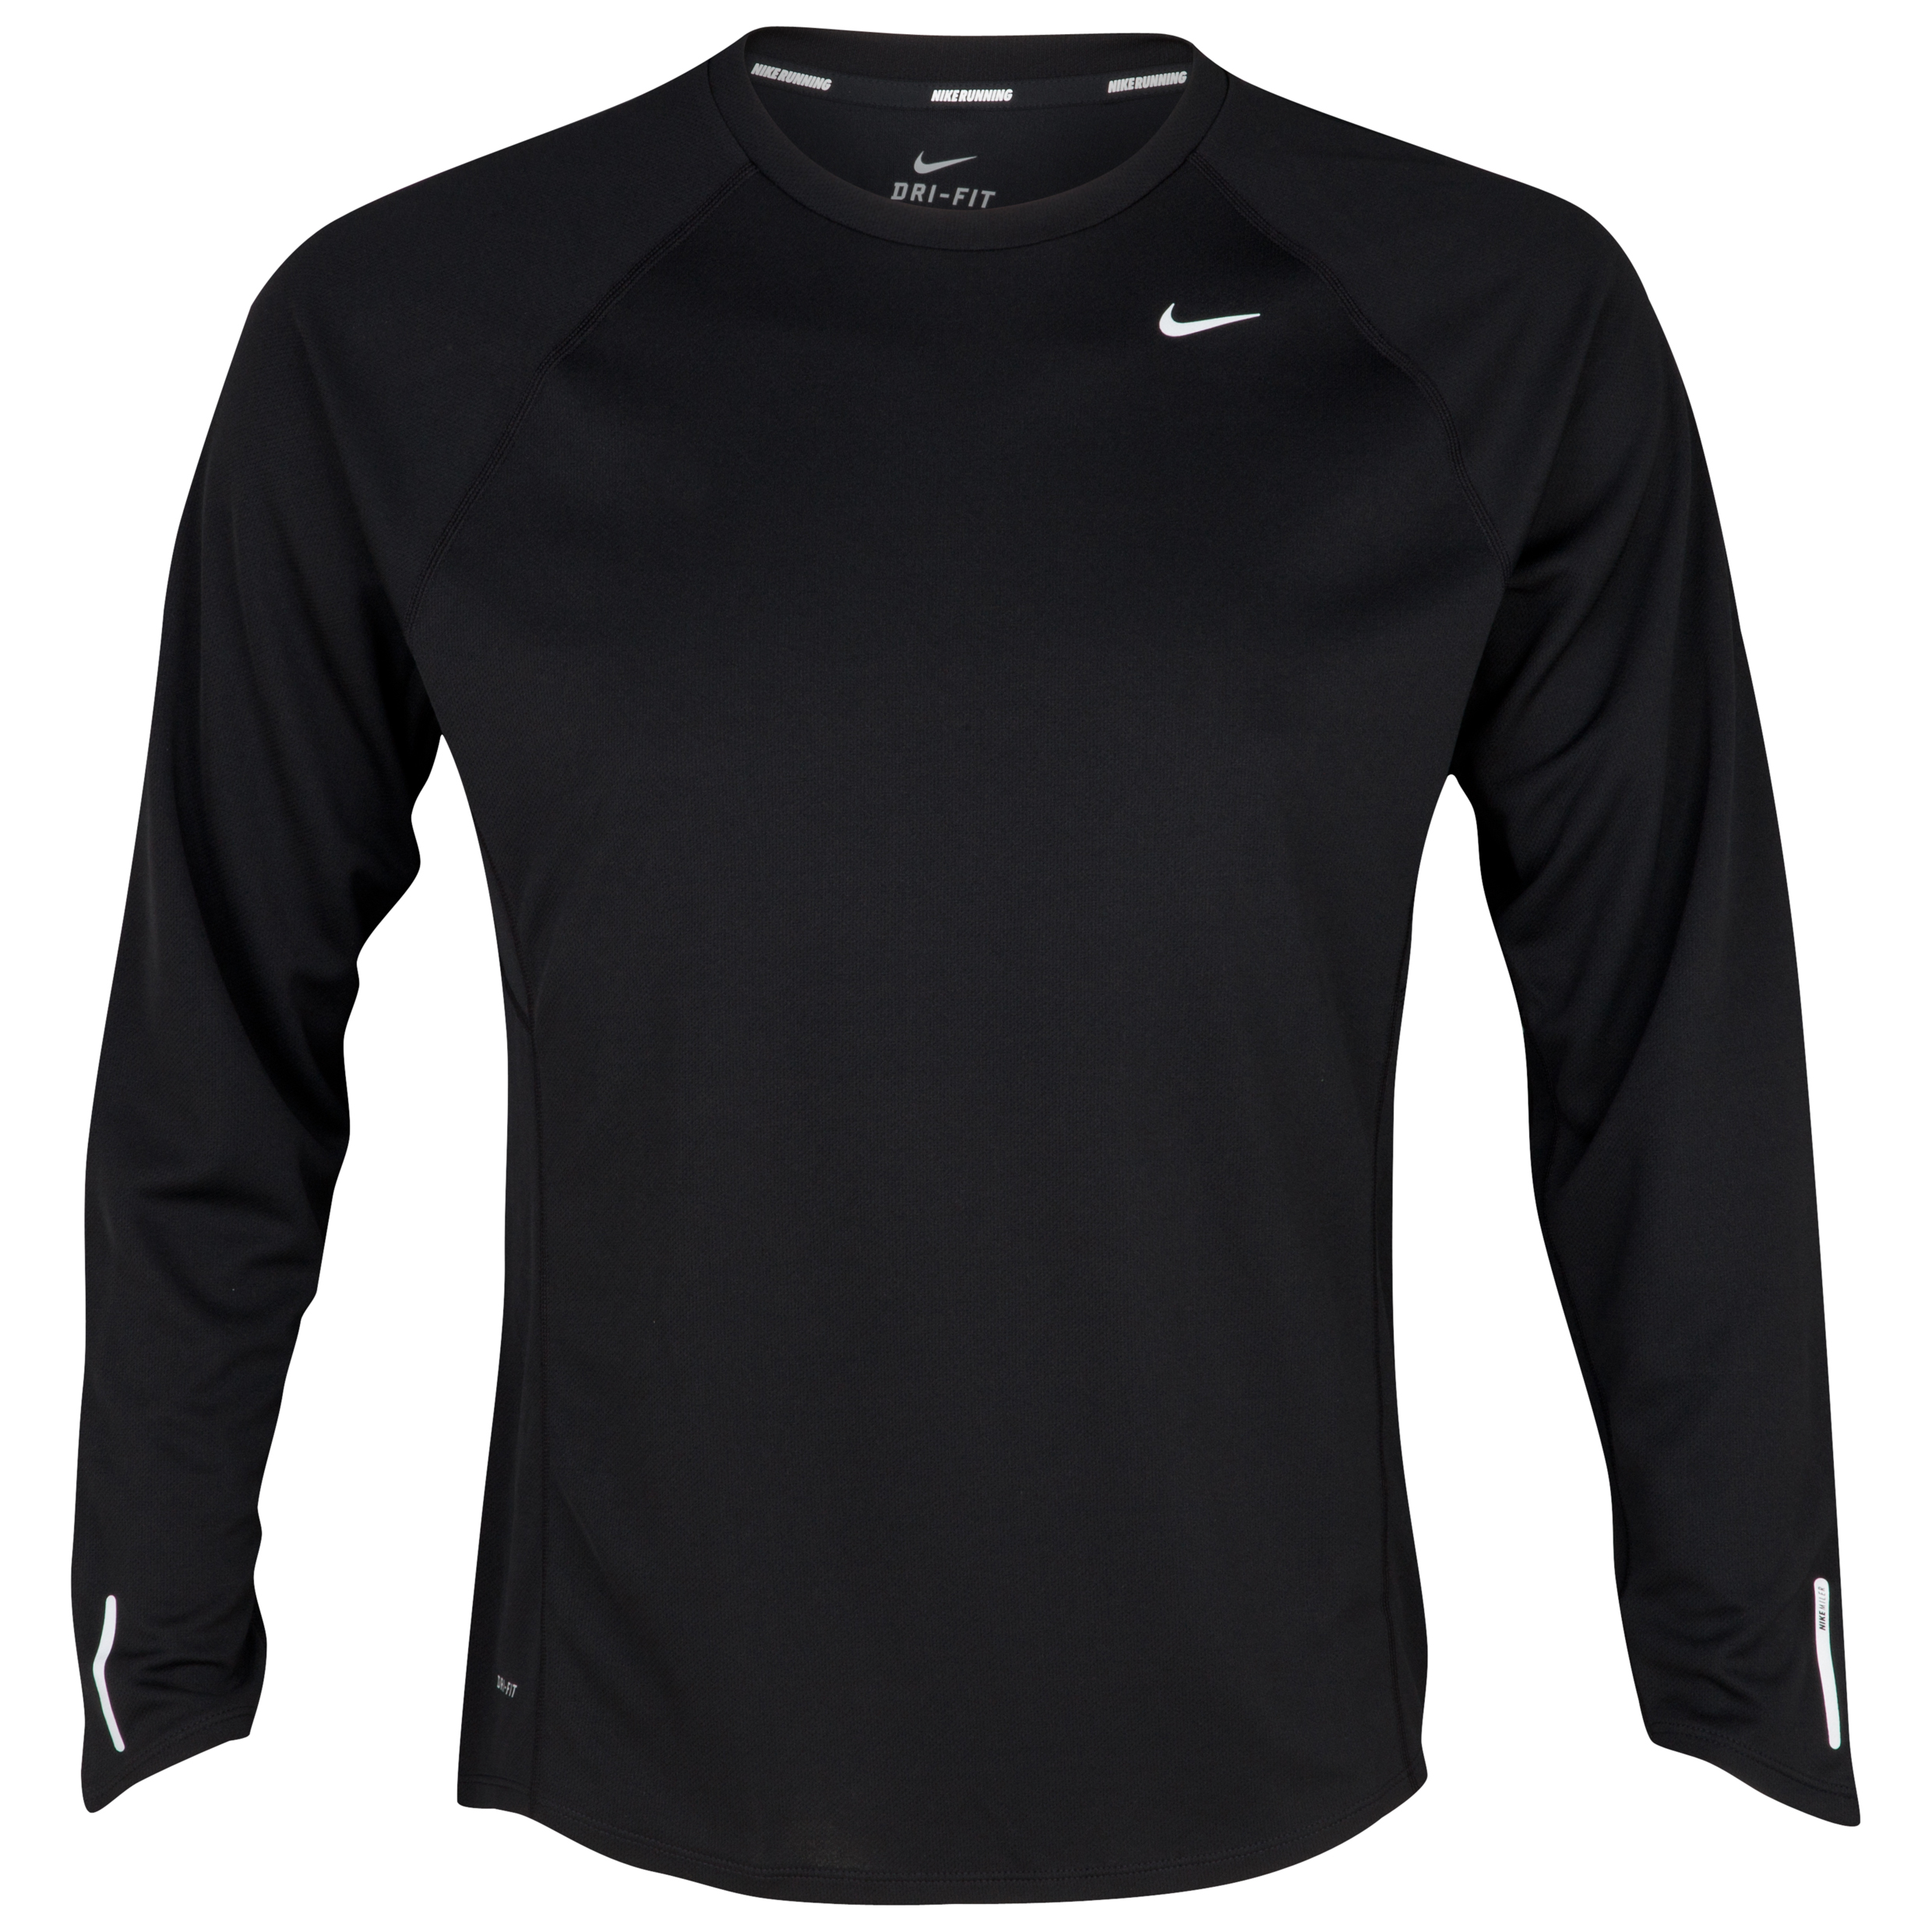 Nike Miler UV Team T-Shirt - Black/Reflective Silver - Long Sleeve